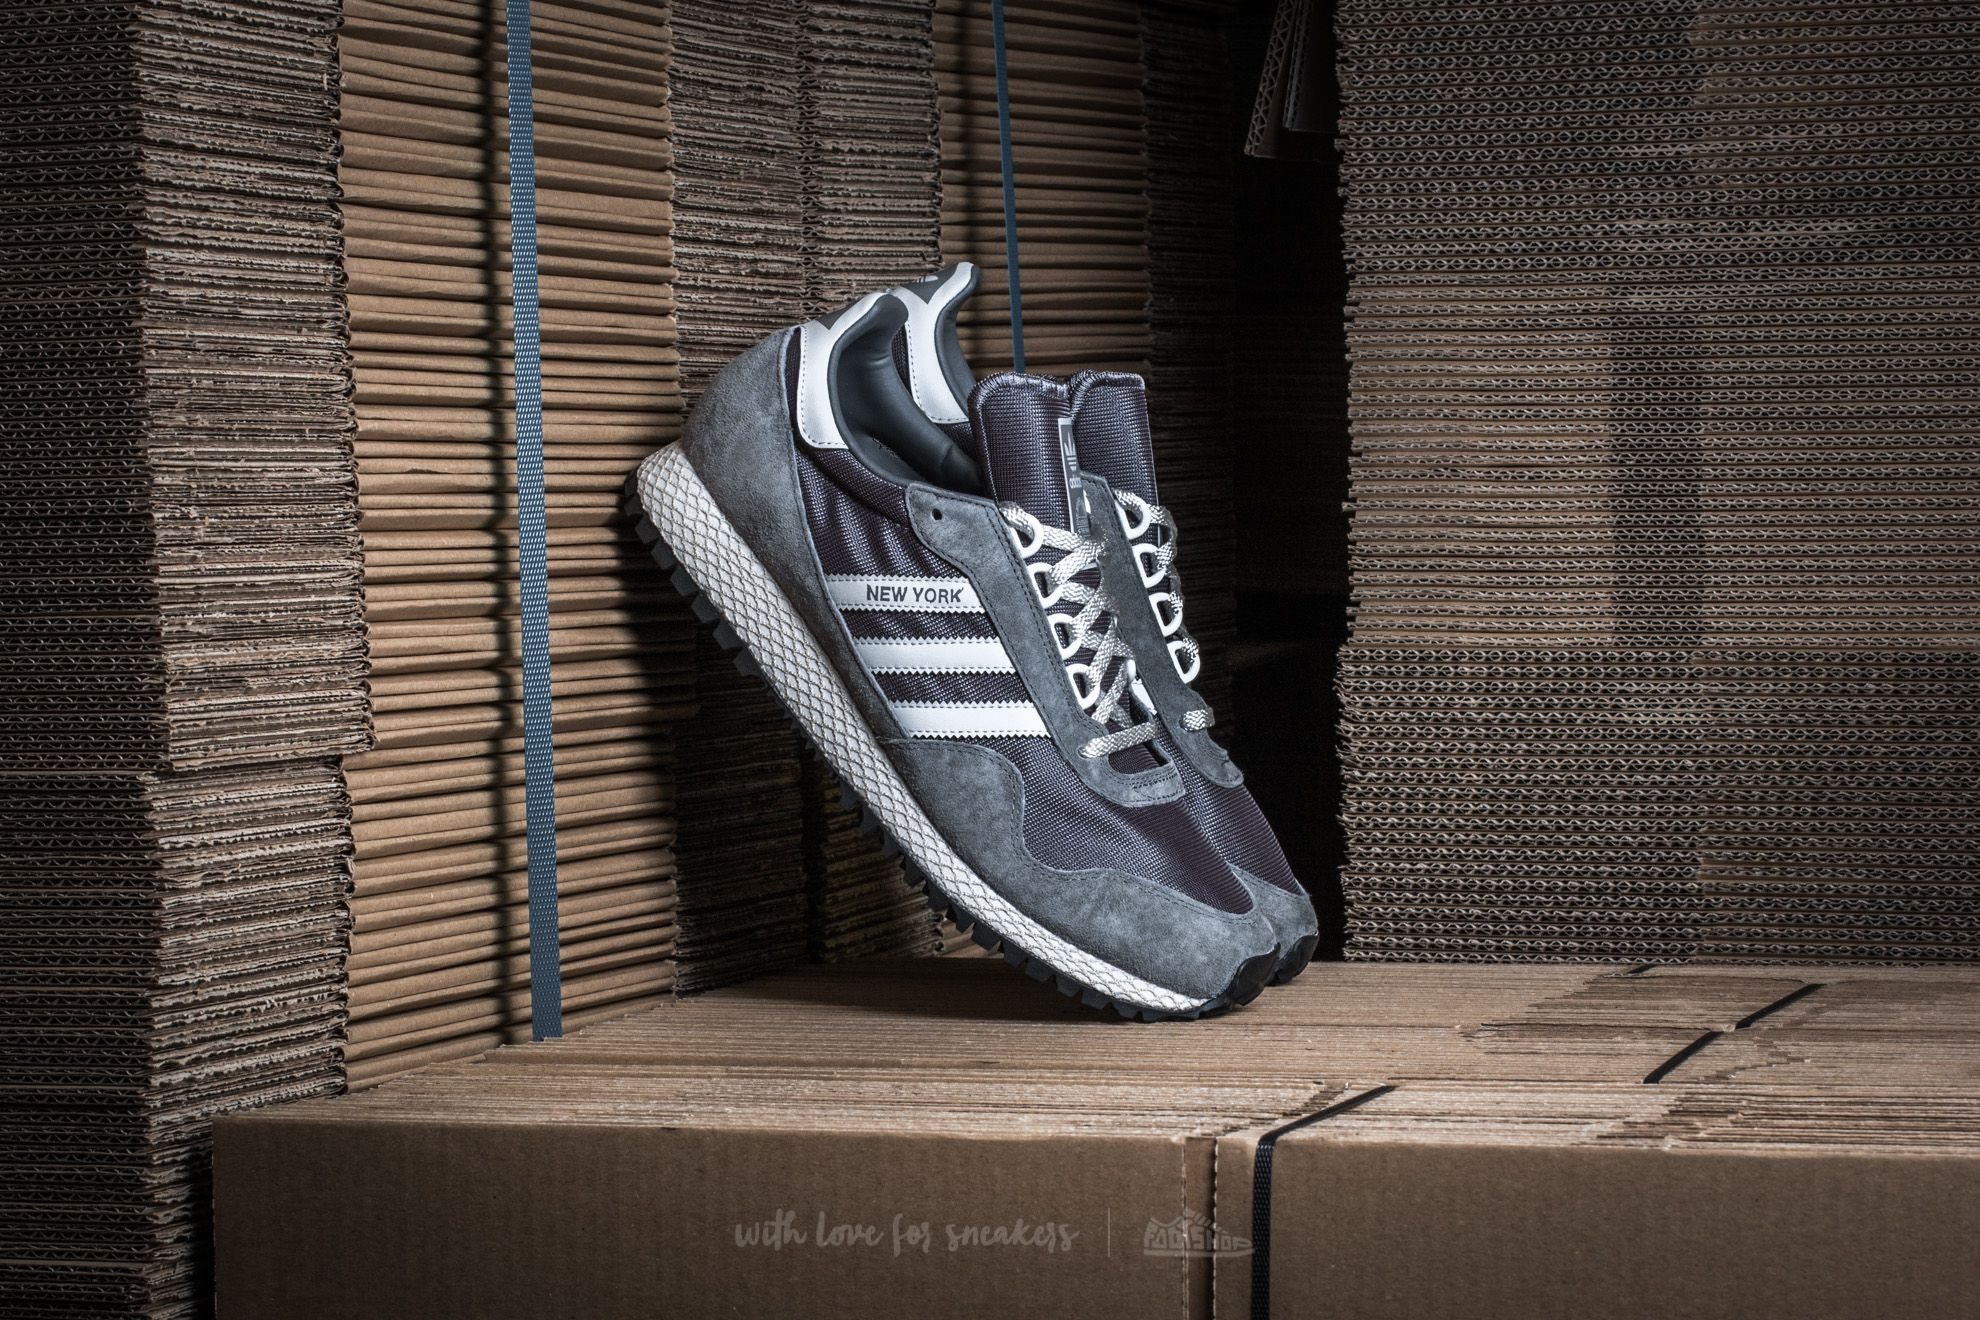 adidas New York Color Granite/ Clear Grey/ Bliss - 12836